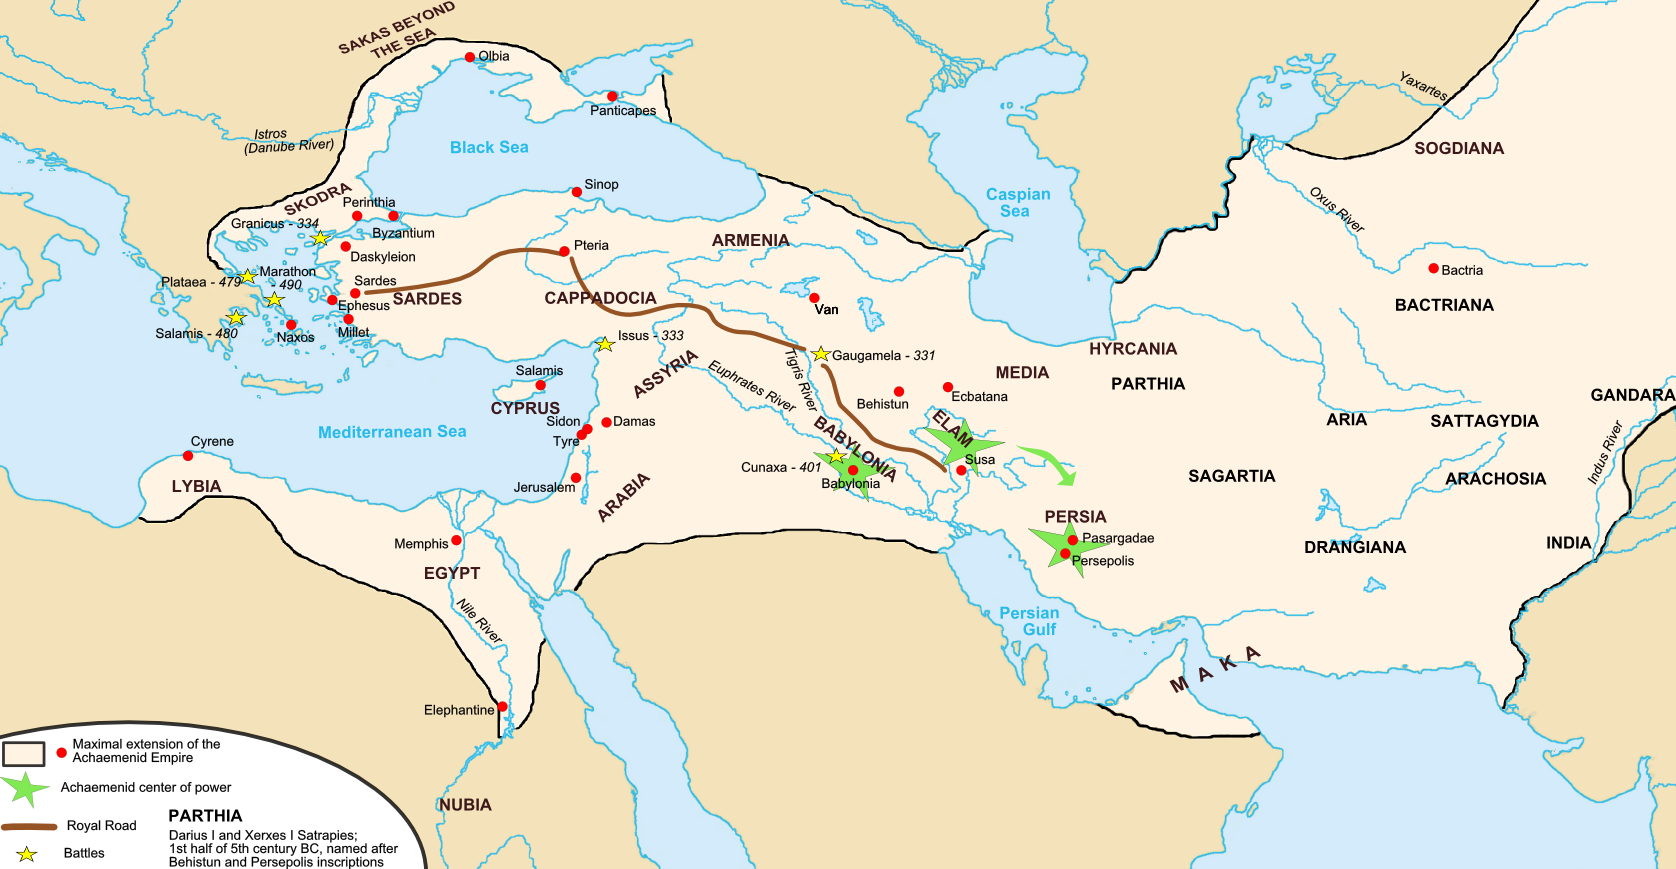 The map of Achaemenid Empire and the section of the Royal Road noted by Herodotus